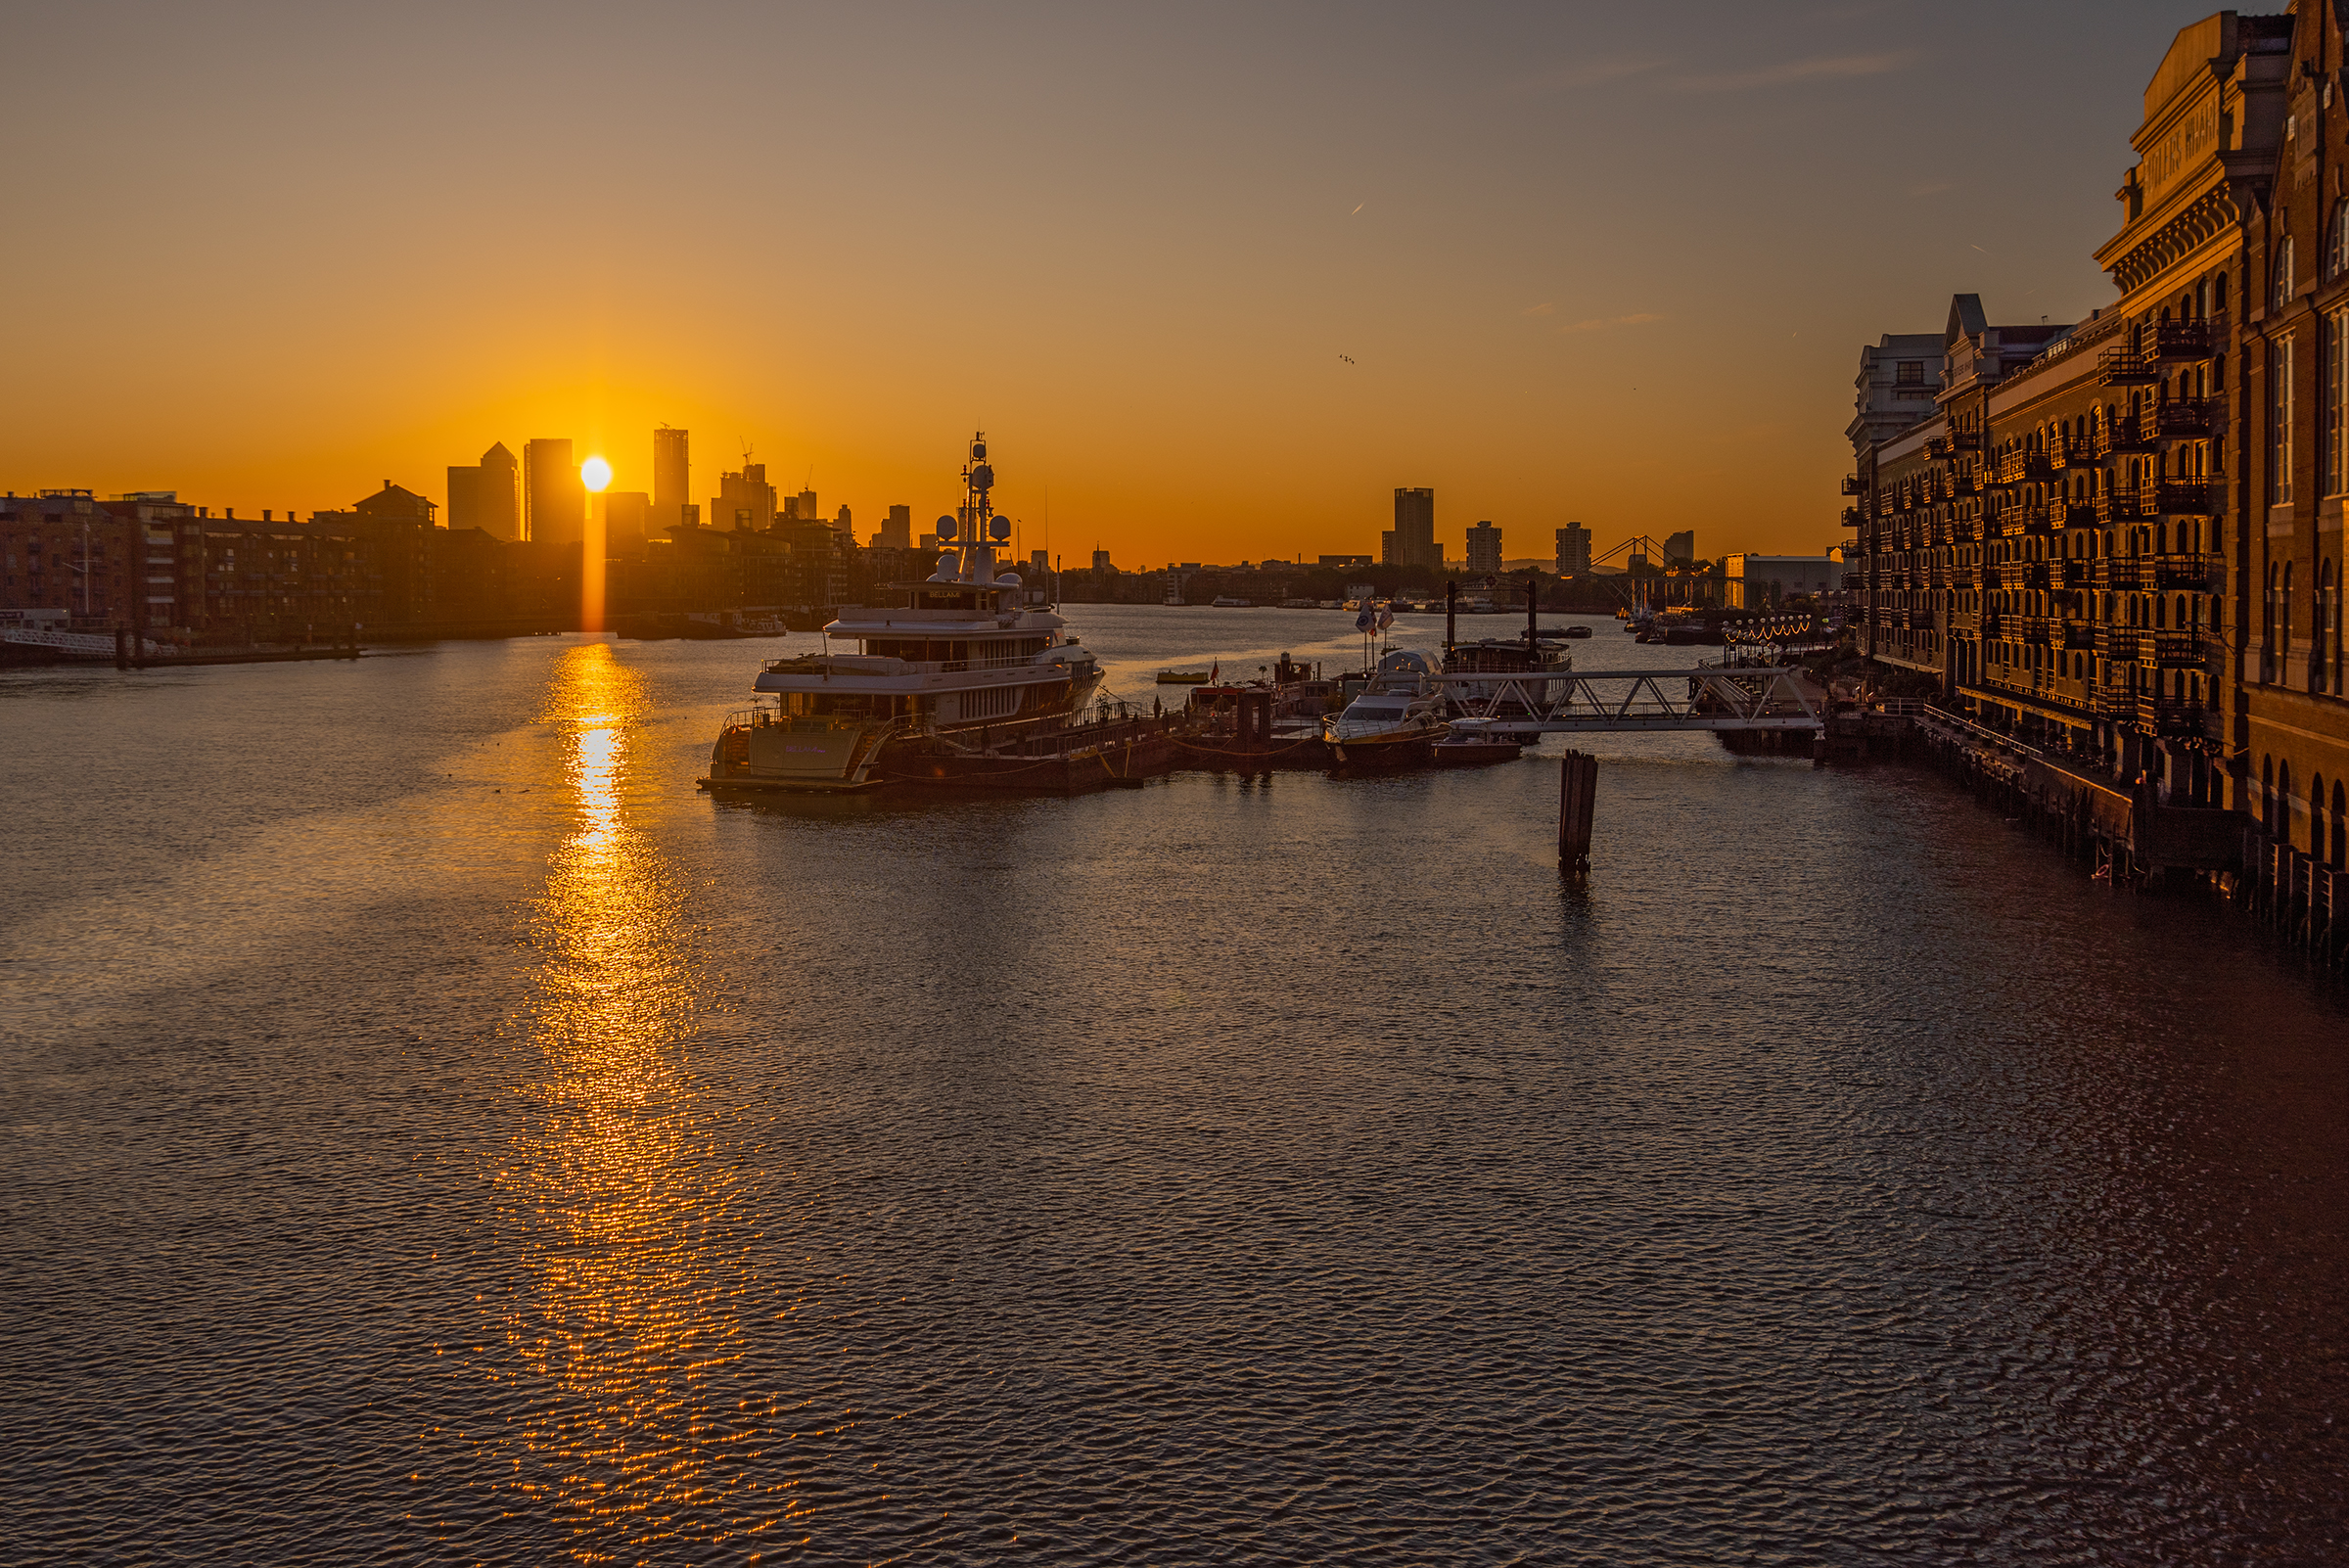 Canary Wharf, London and River Thames sunrise from Tower Bridge